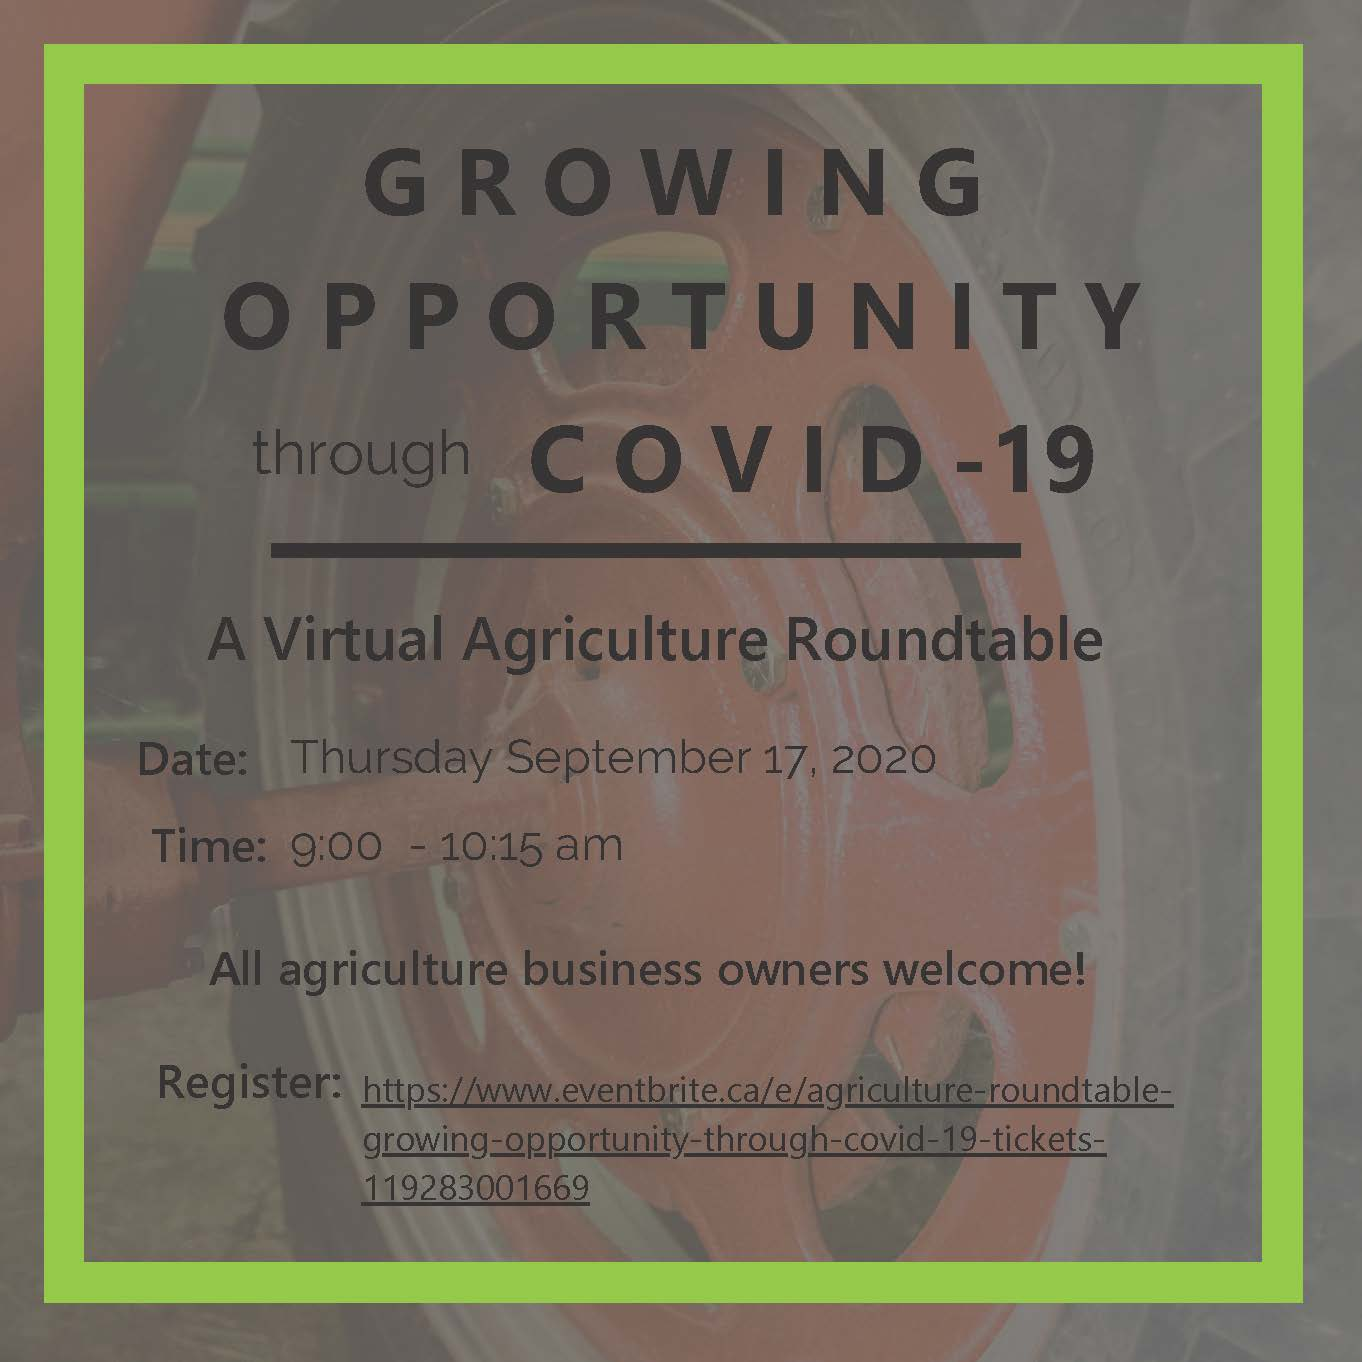 Virtual Agriculture Roundtable Promotional Poster